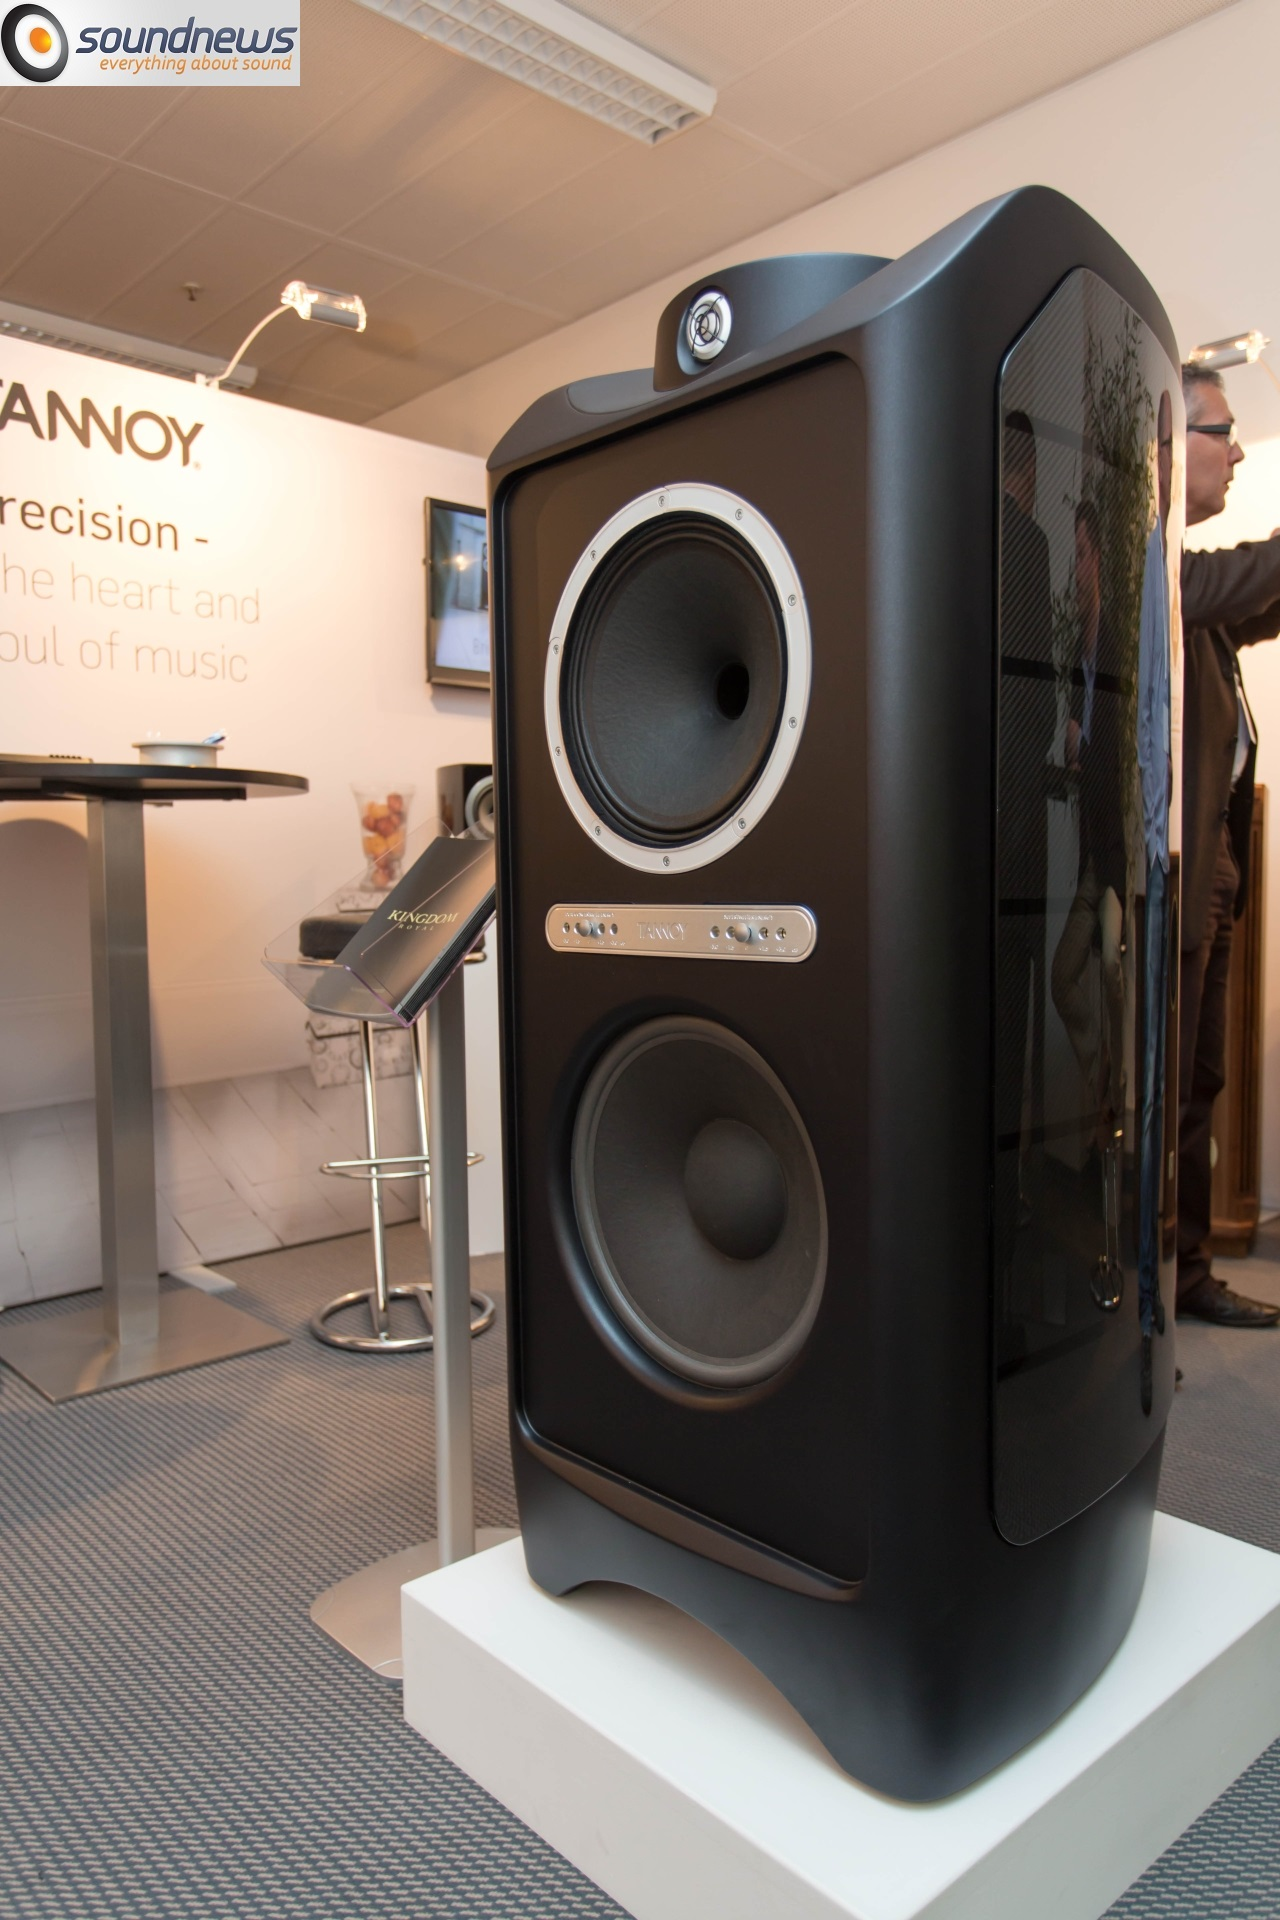 Tannoy (1 of 1)-5